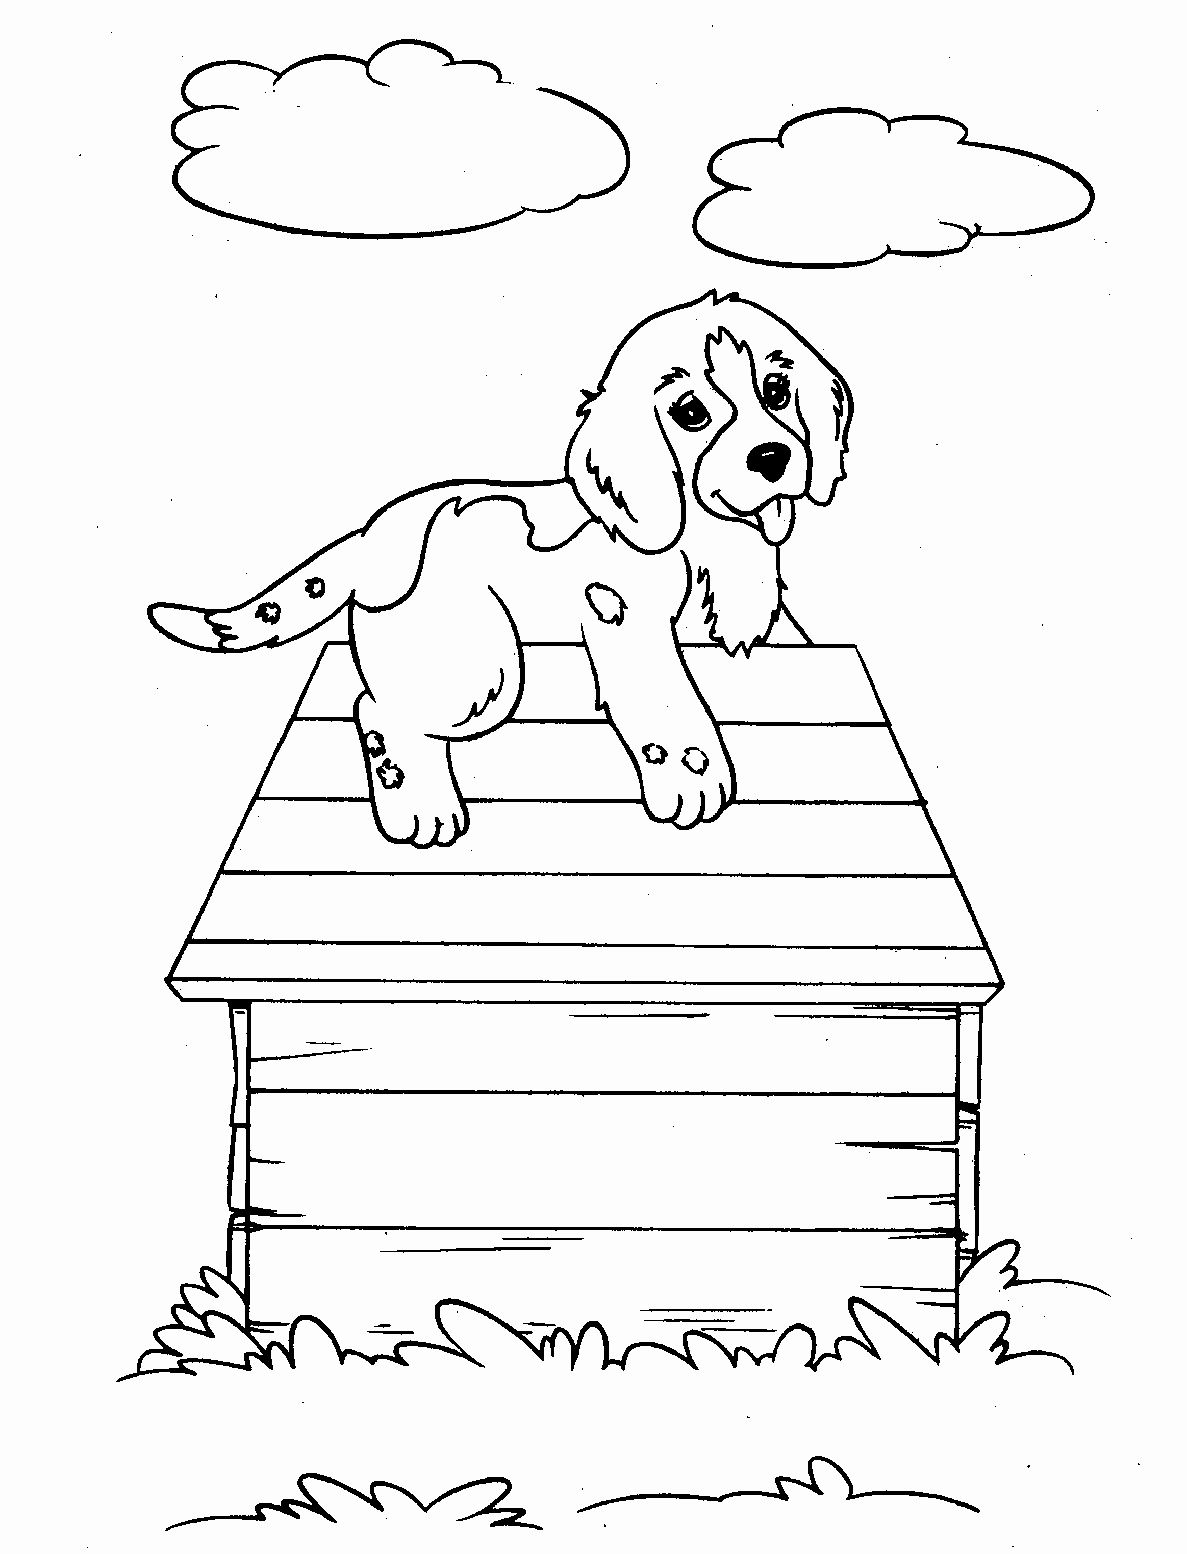 40 Coloring Pages Of Puppies In 2020 Dog Coloring Page Puppy